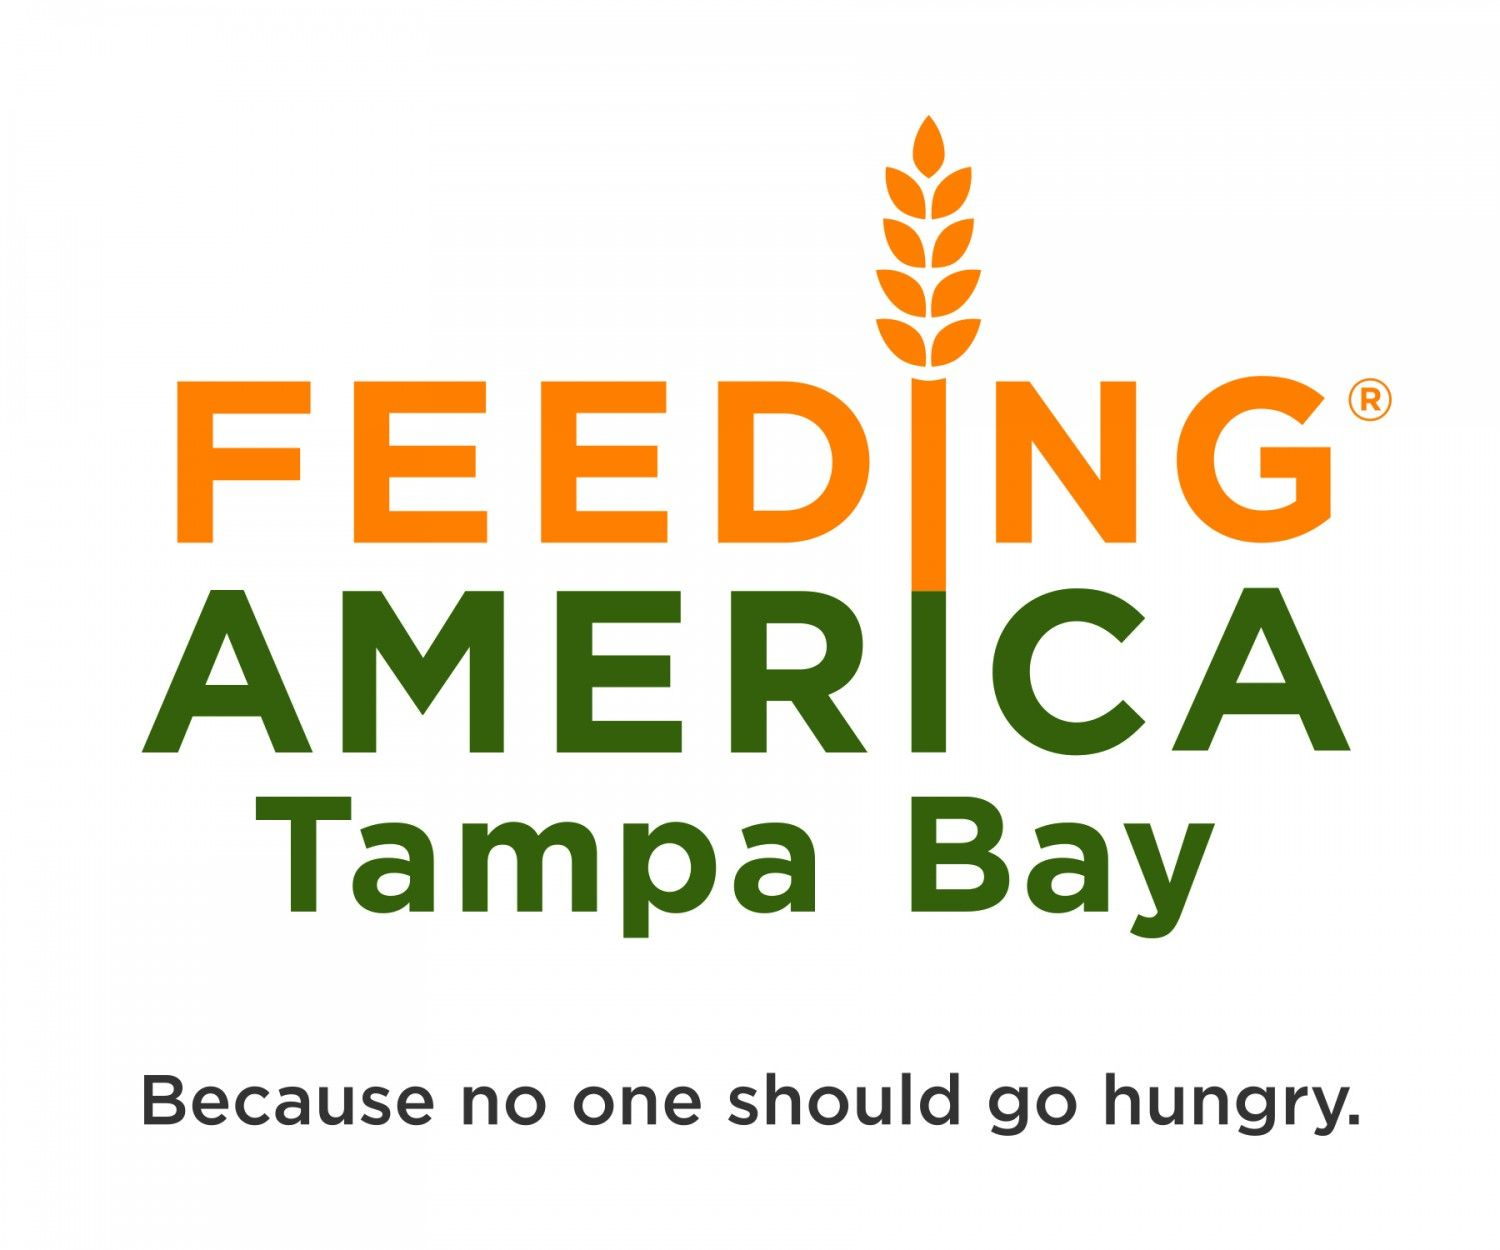 Feeding America Tampa Bay is the largest hunger relief